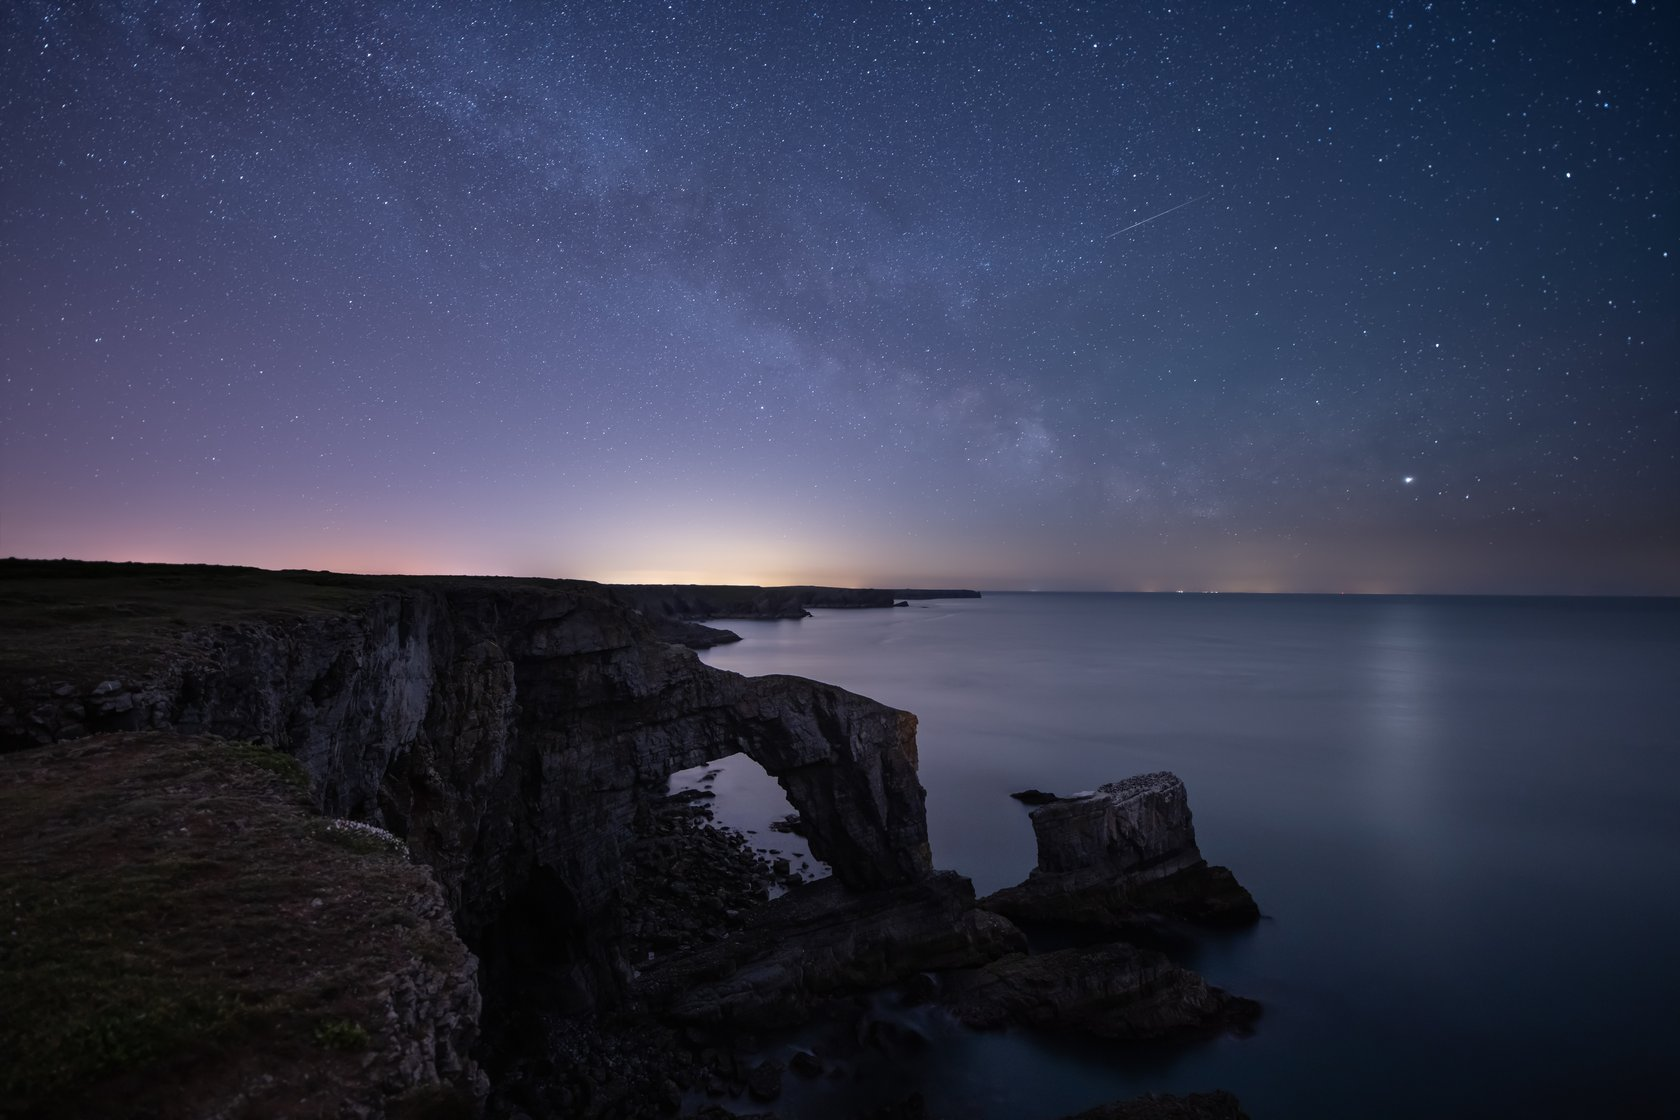 Landscape Astrophotography Editing Tips with Luminar 3 Image1